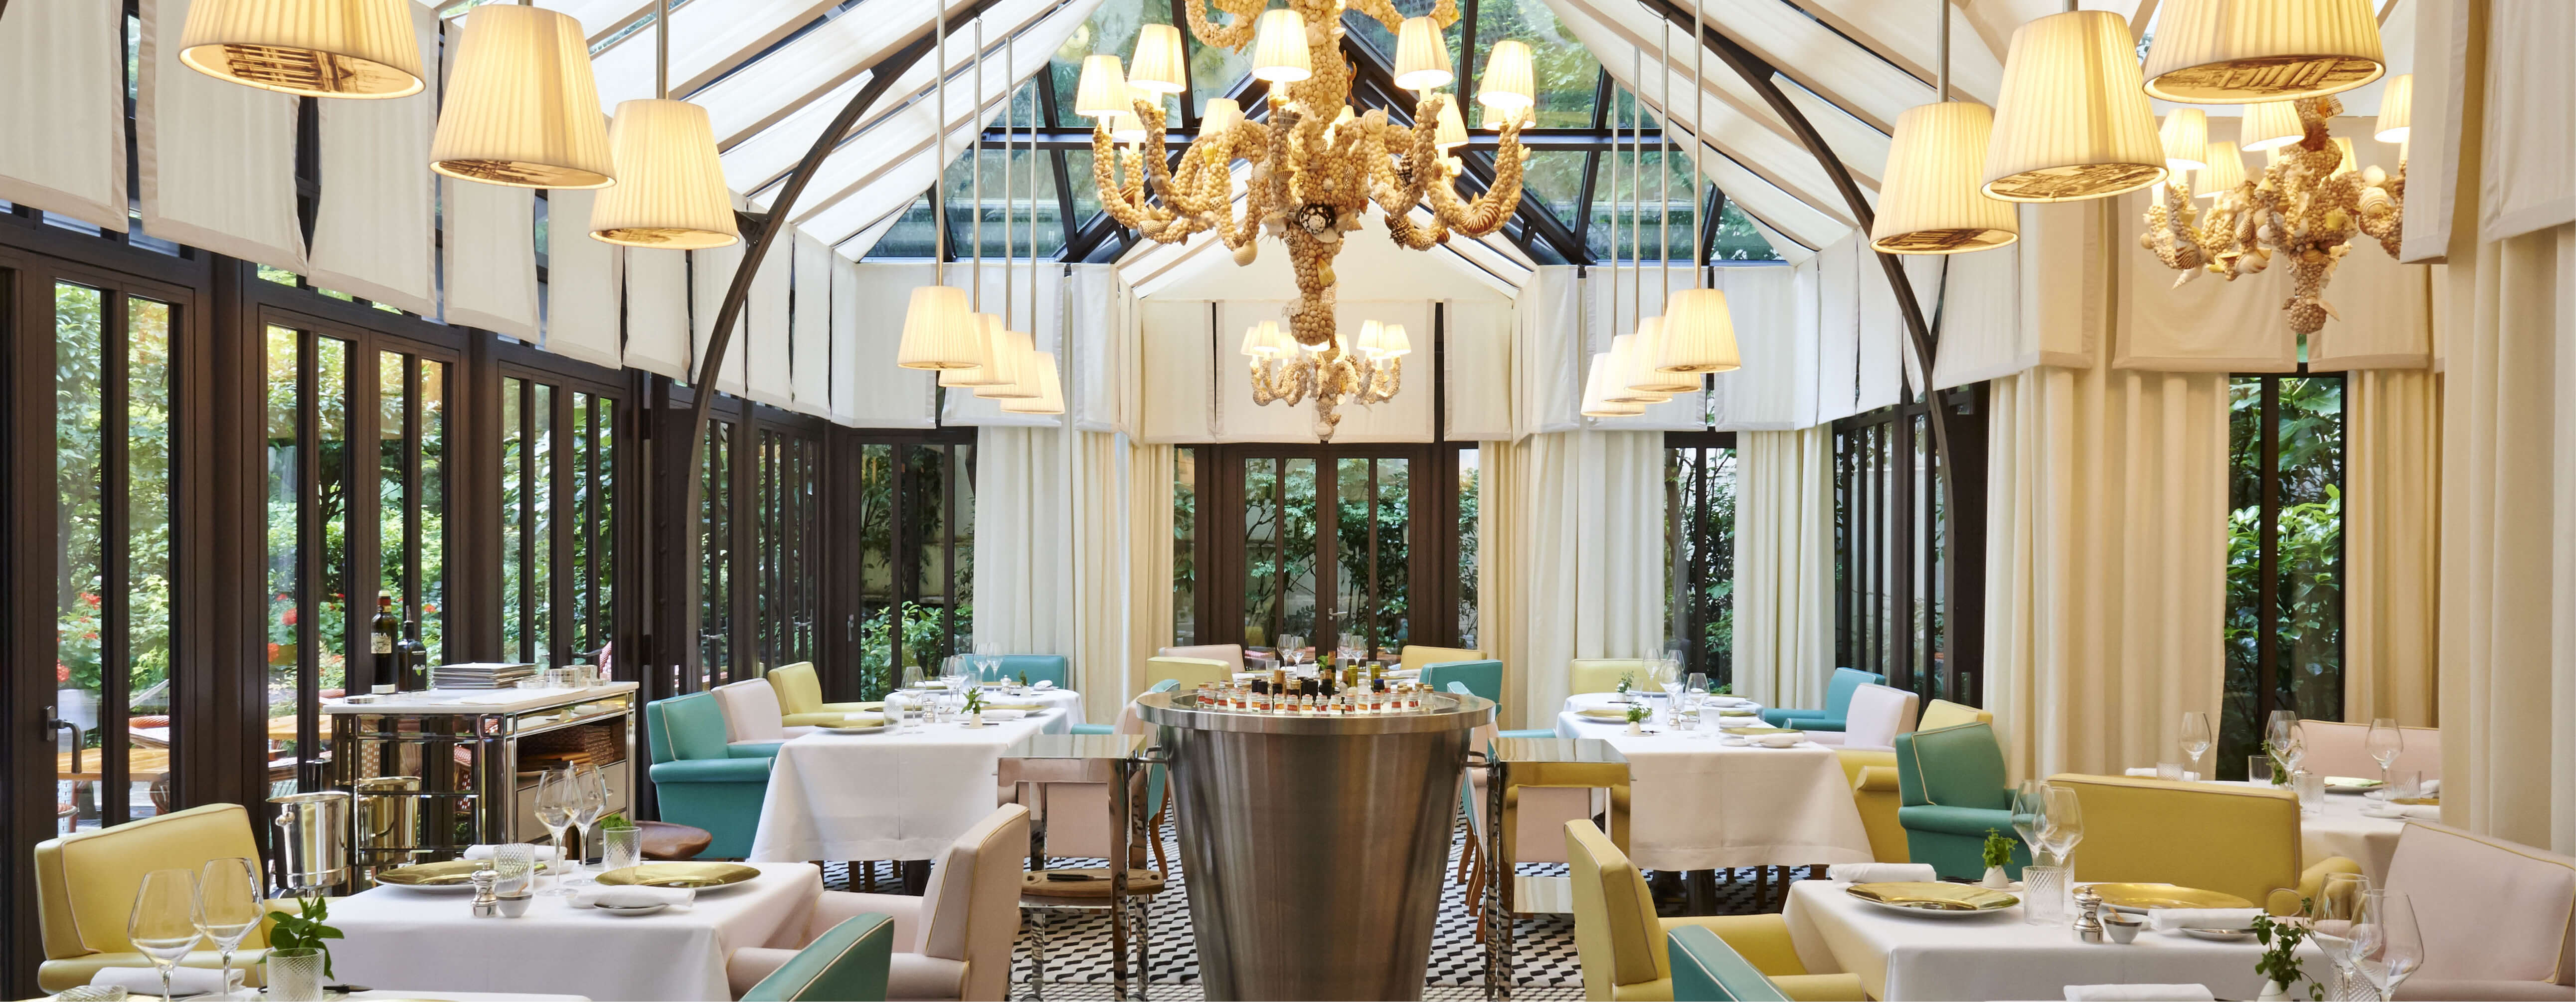 Boutique Luxury Hotel in Paris - Le Royal Monceau Raffles